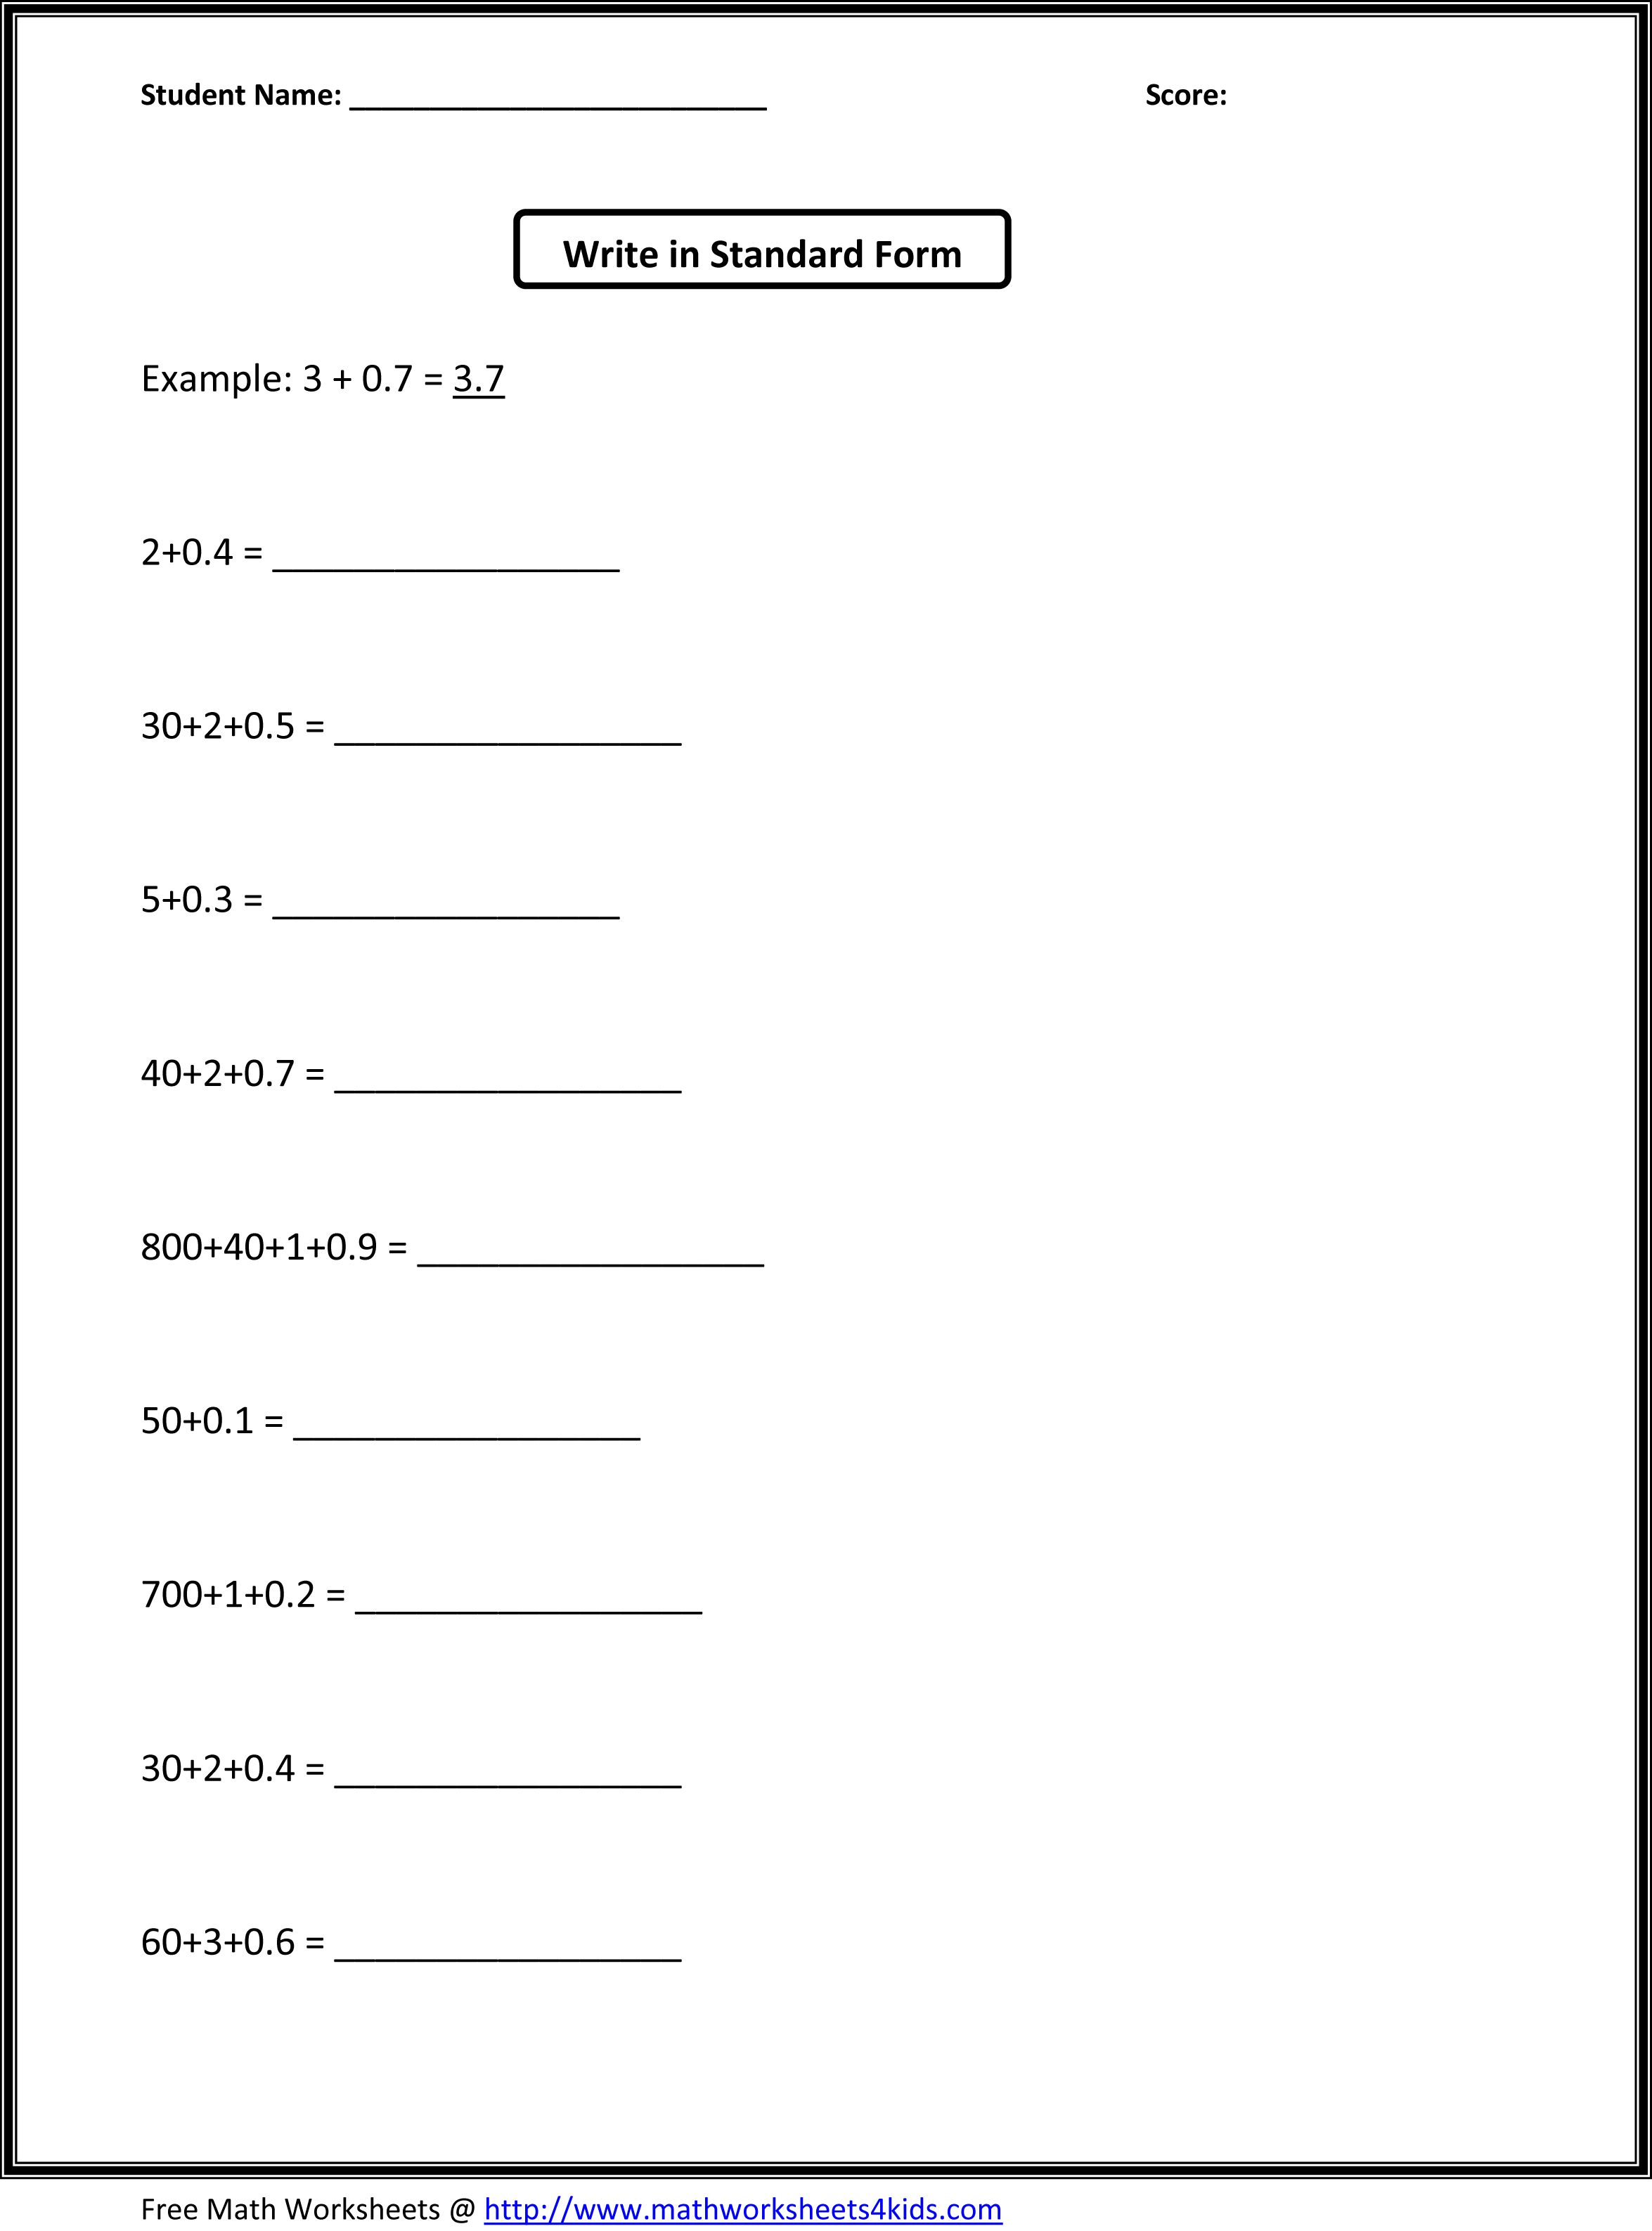 medium resolution of Third Grade Math Worksheets   Free math worksheets